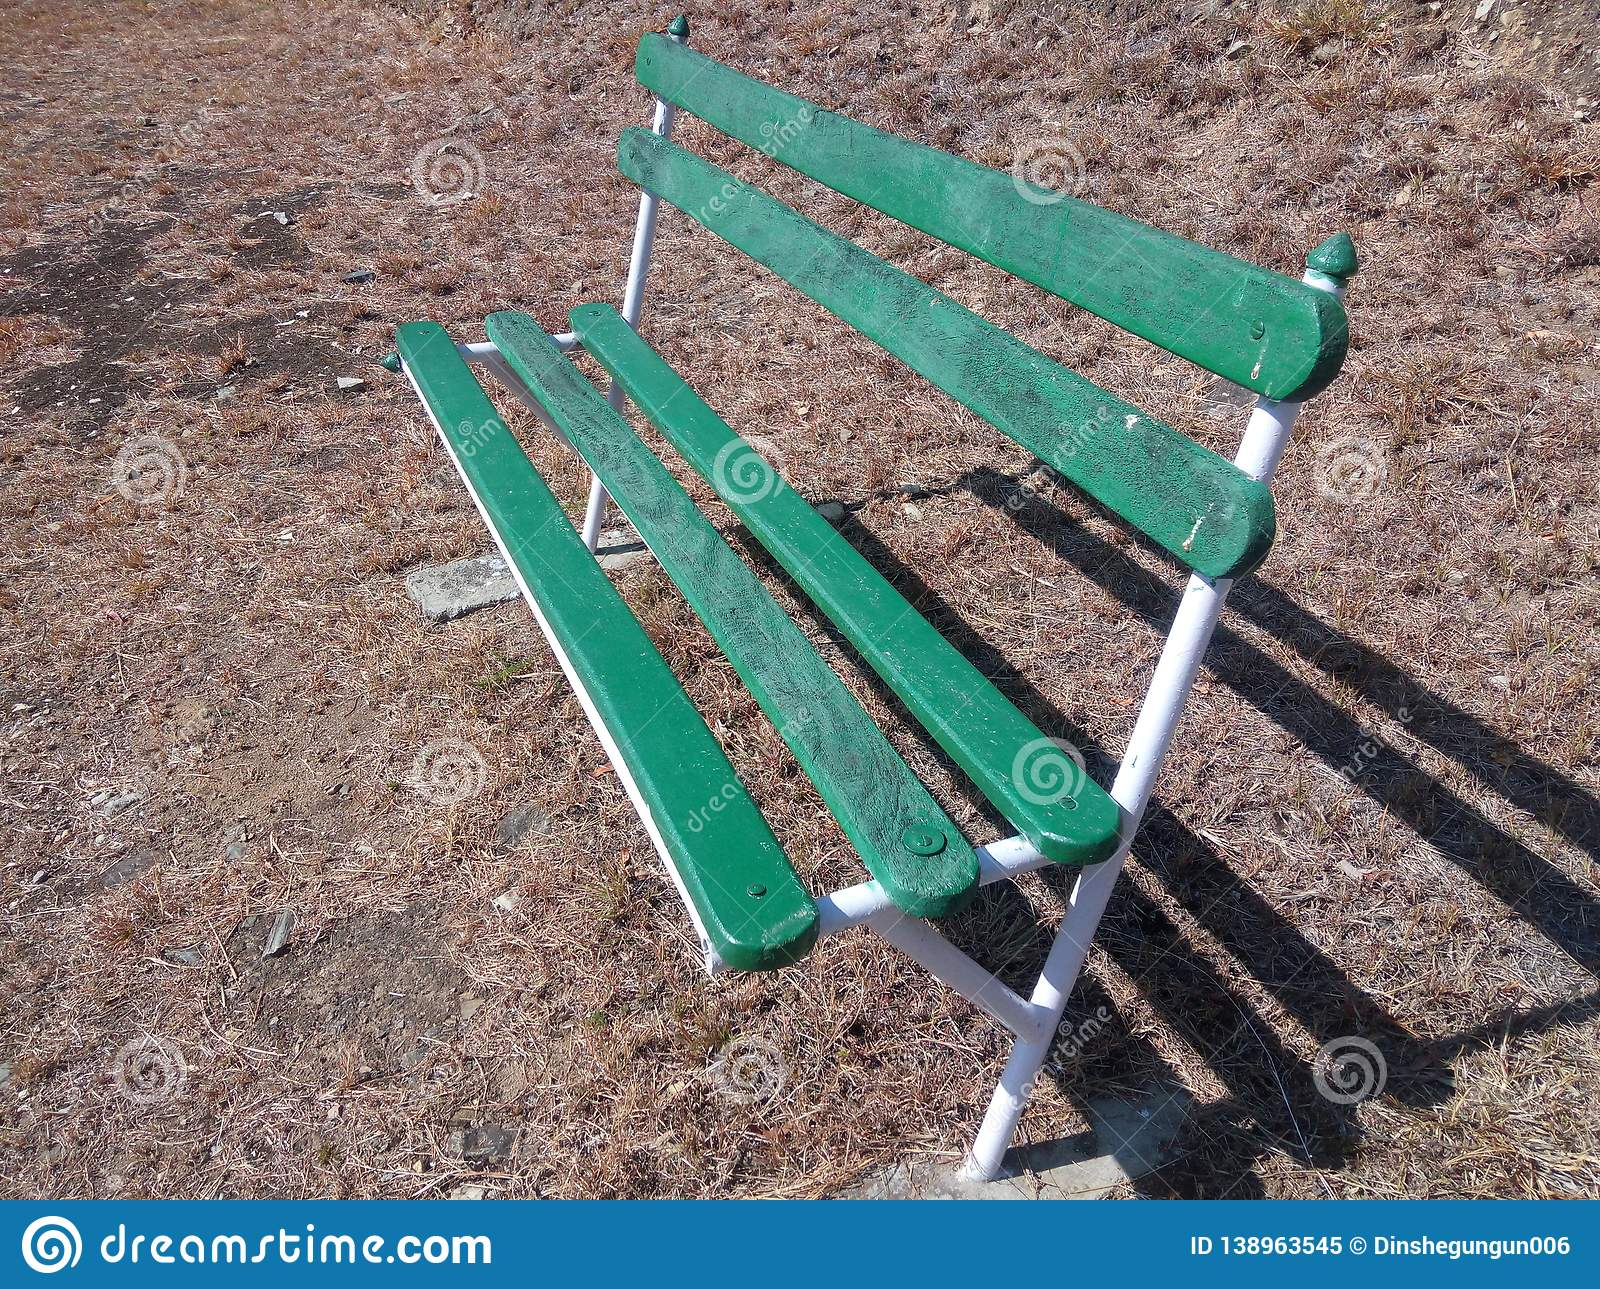 Marvelous Siting Bench Stock Image Image Of Alone Background 138963545 Caraccident5 Cool Chair Designs And Ideas Caraccident5Info